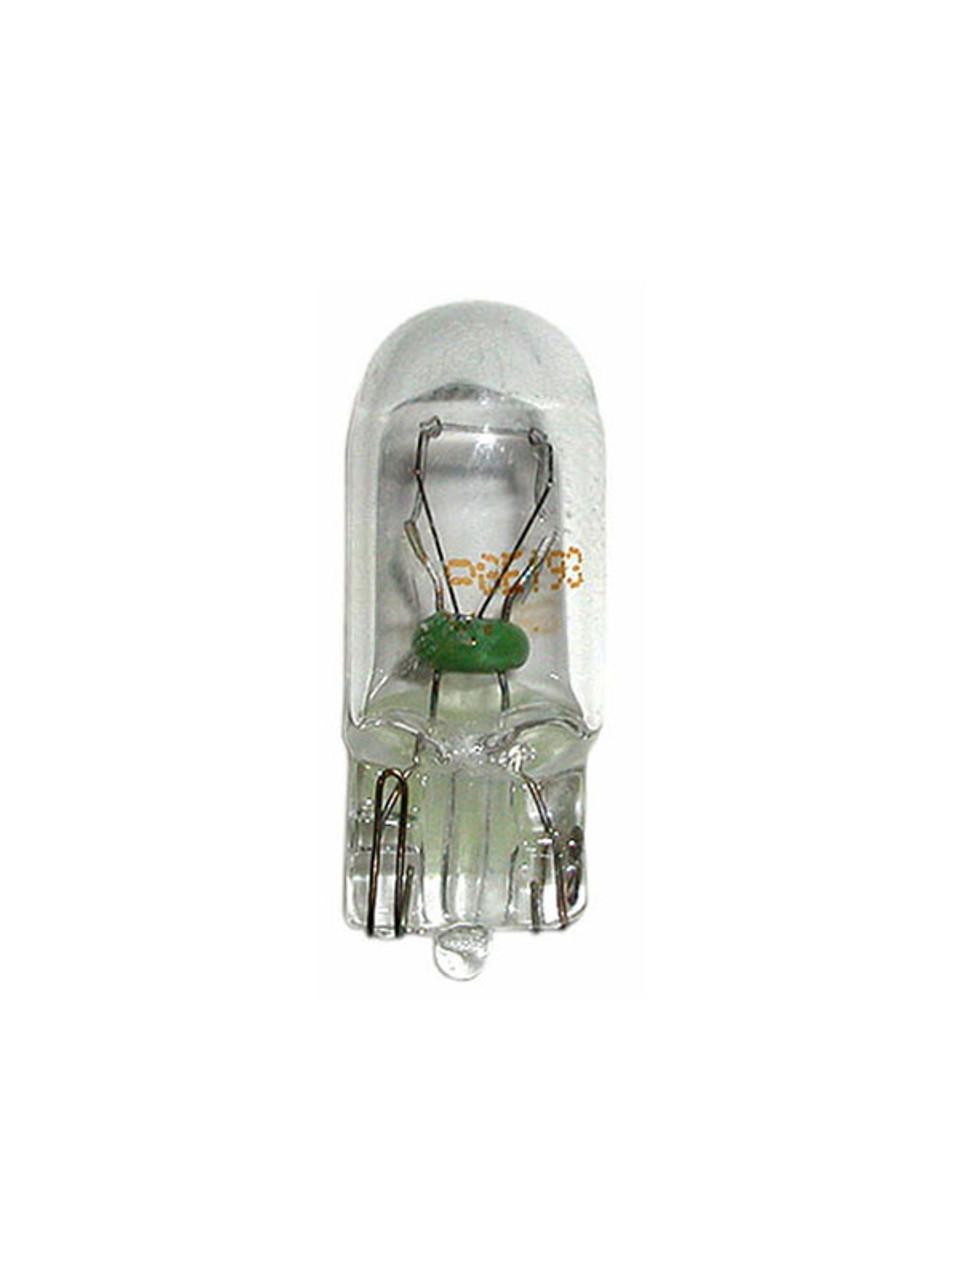 B194 --- Replacement Bulb